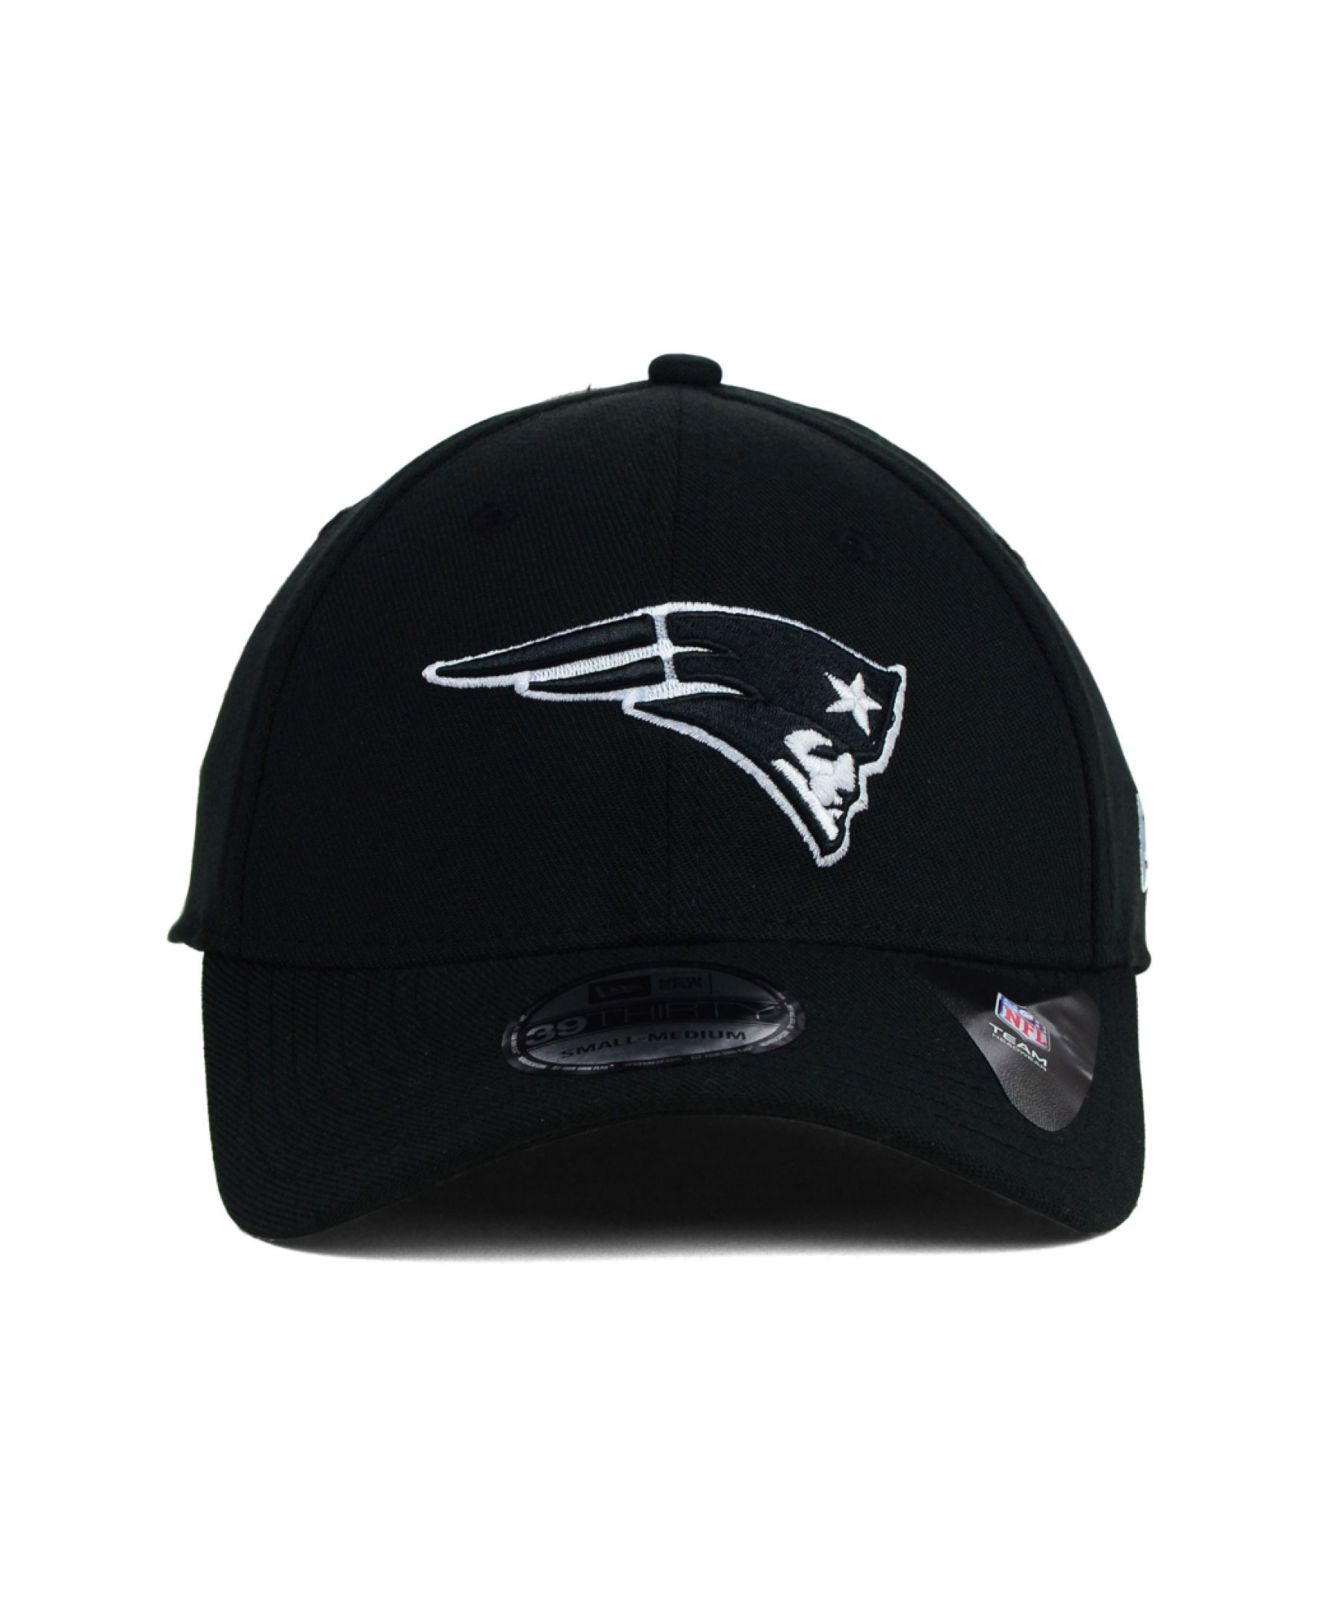 Lyst - KTZ New England Patriots Black and White Classic 39thirty Cap ... c89ee9d81